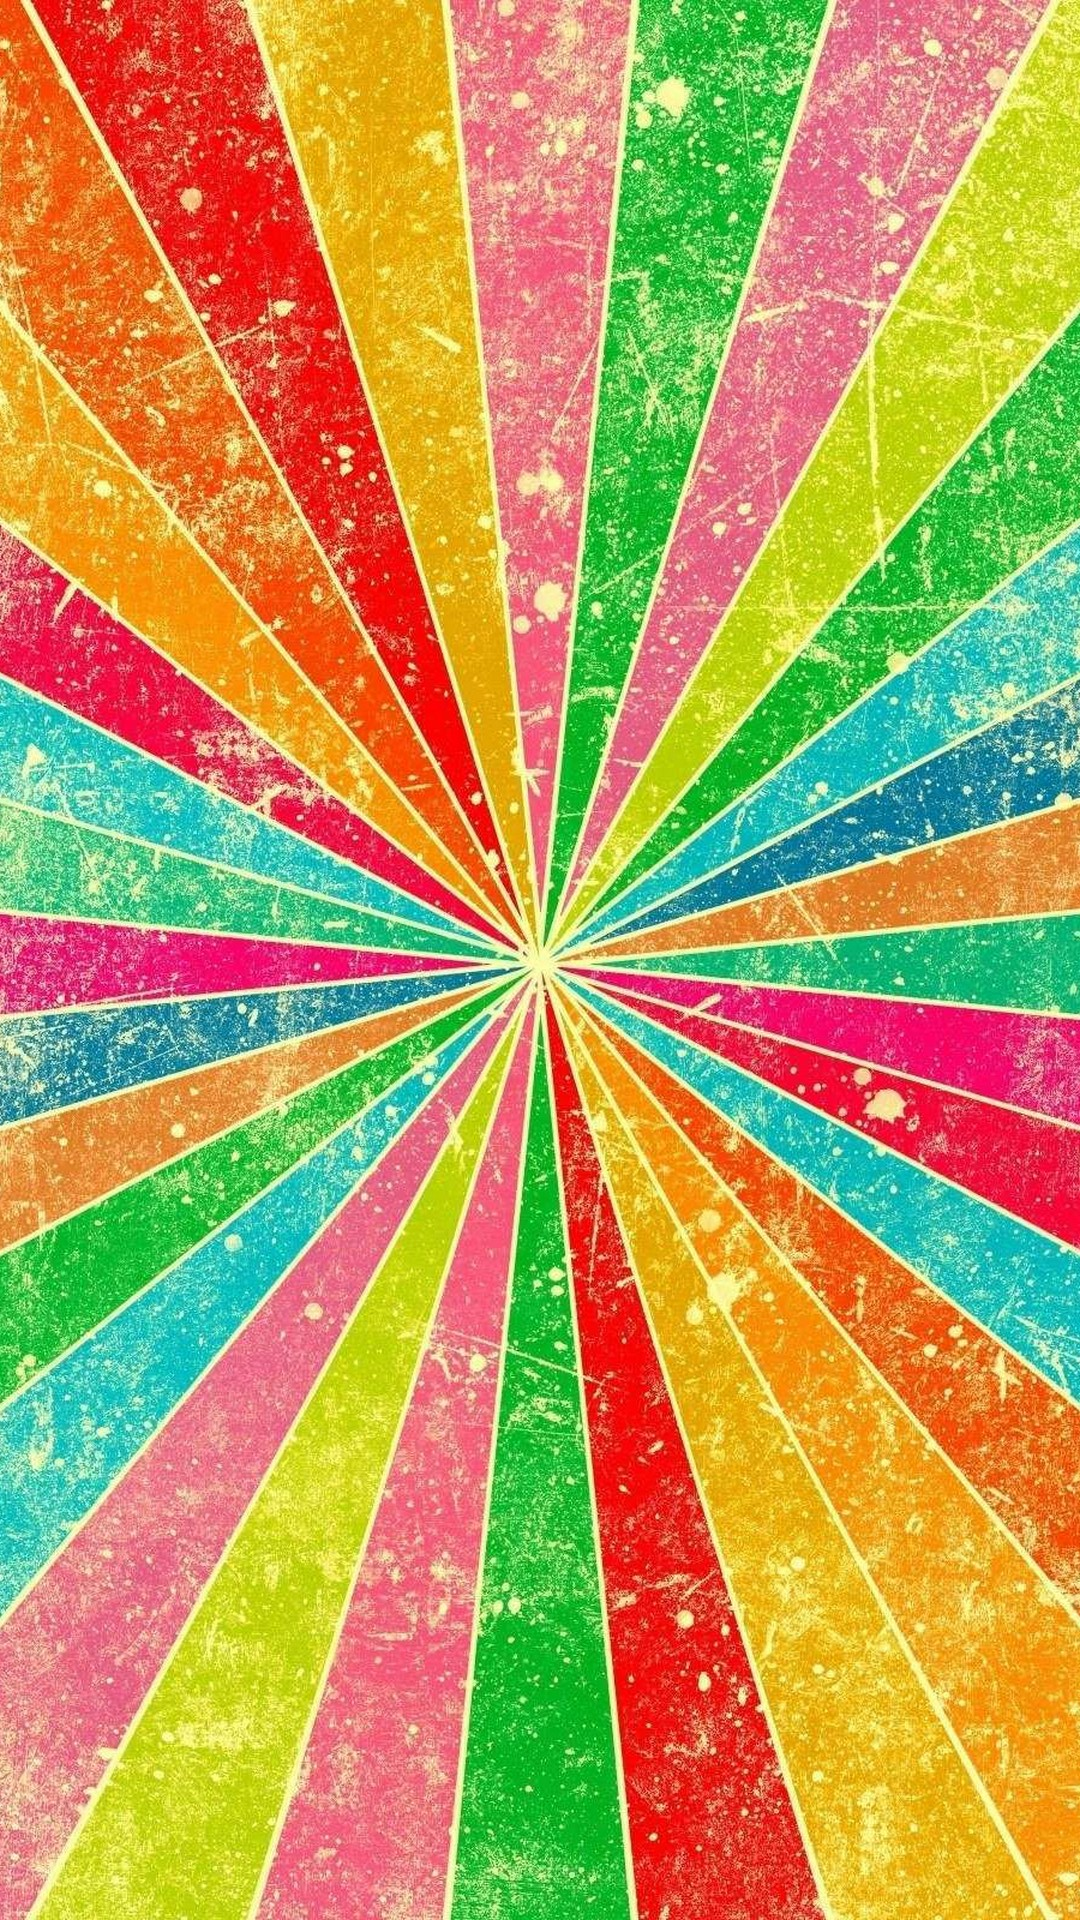 Rainbow Colors Wallpaper Android With Image Resolution - Hd Wallpapers Rainbow Colors For Iphone - HD Wallpaper